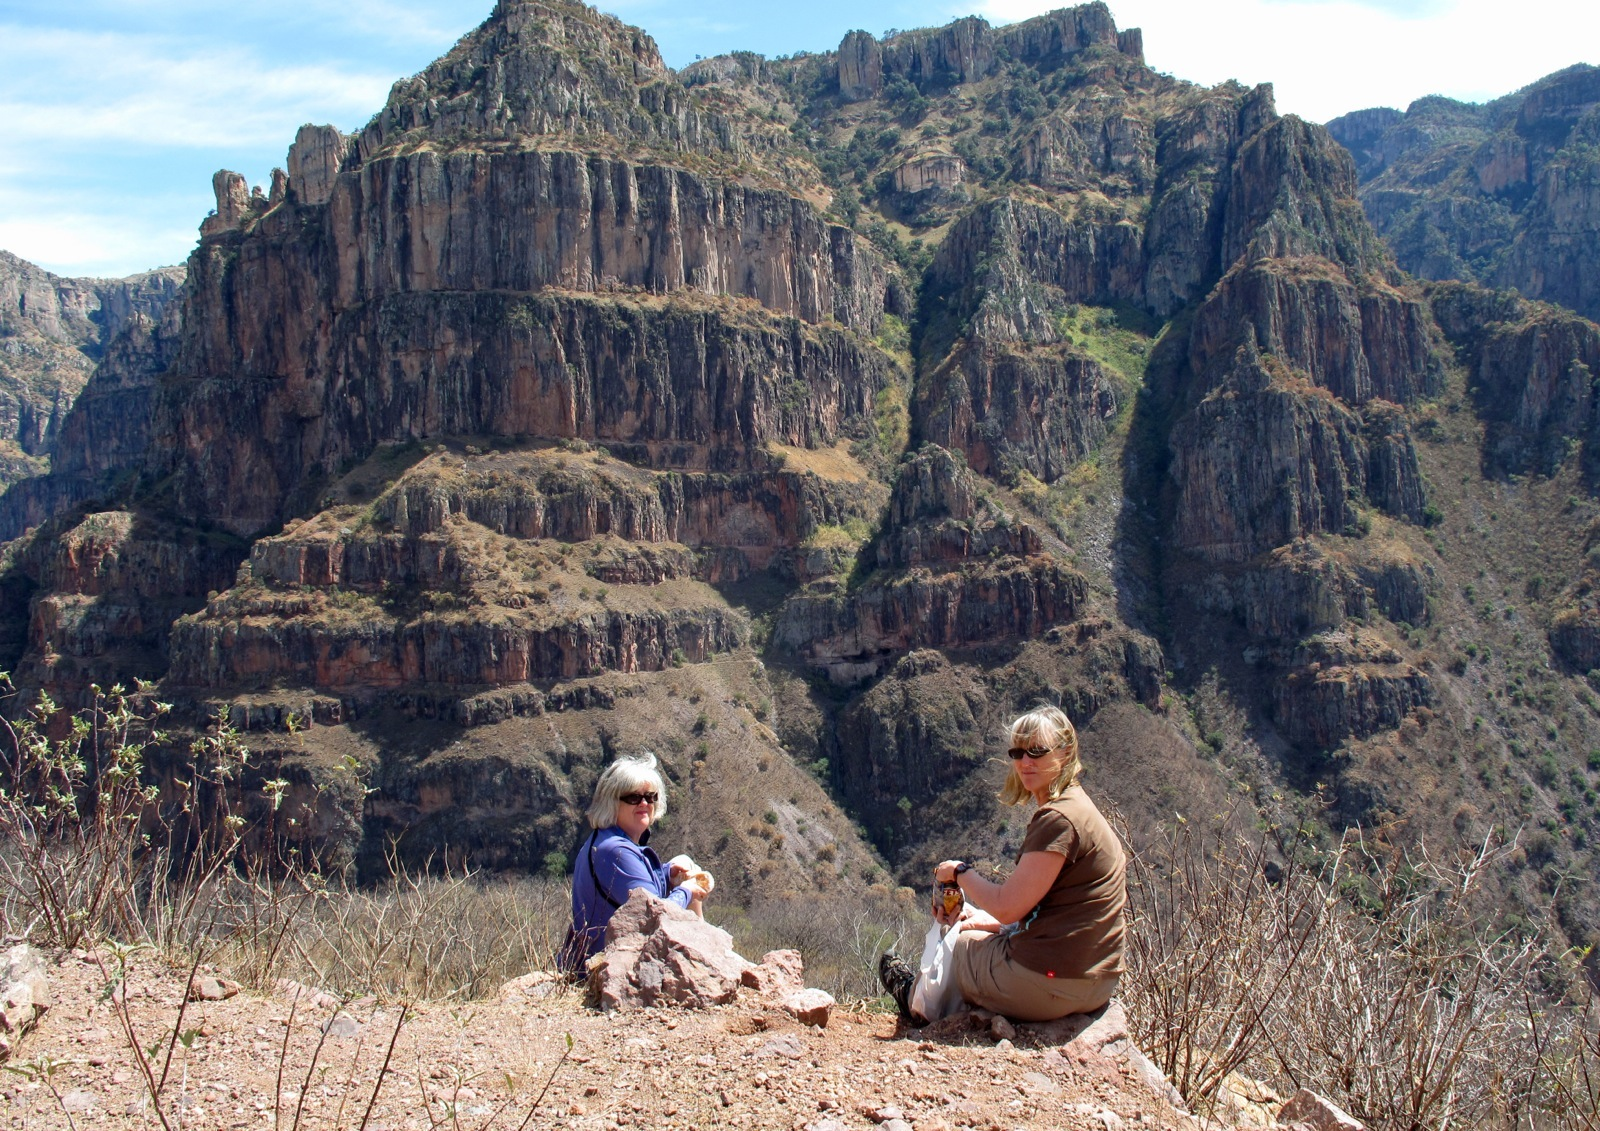 Two women enjoying the view of a spectacular geological formation called Wedding Cake Mountain in Copper Canyon.